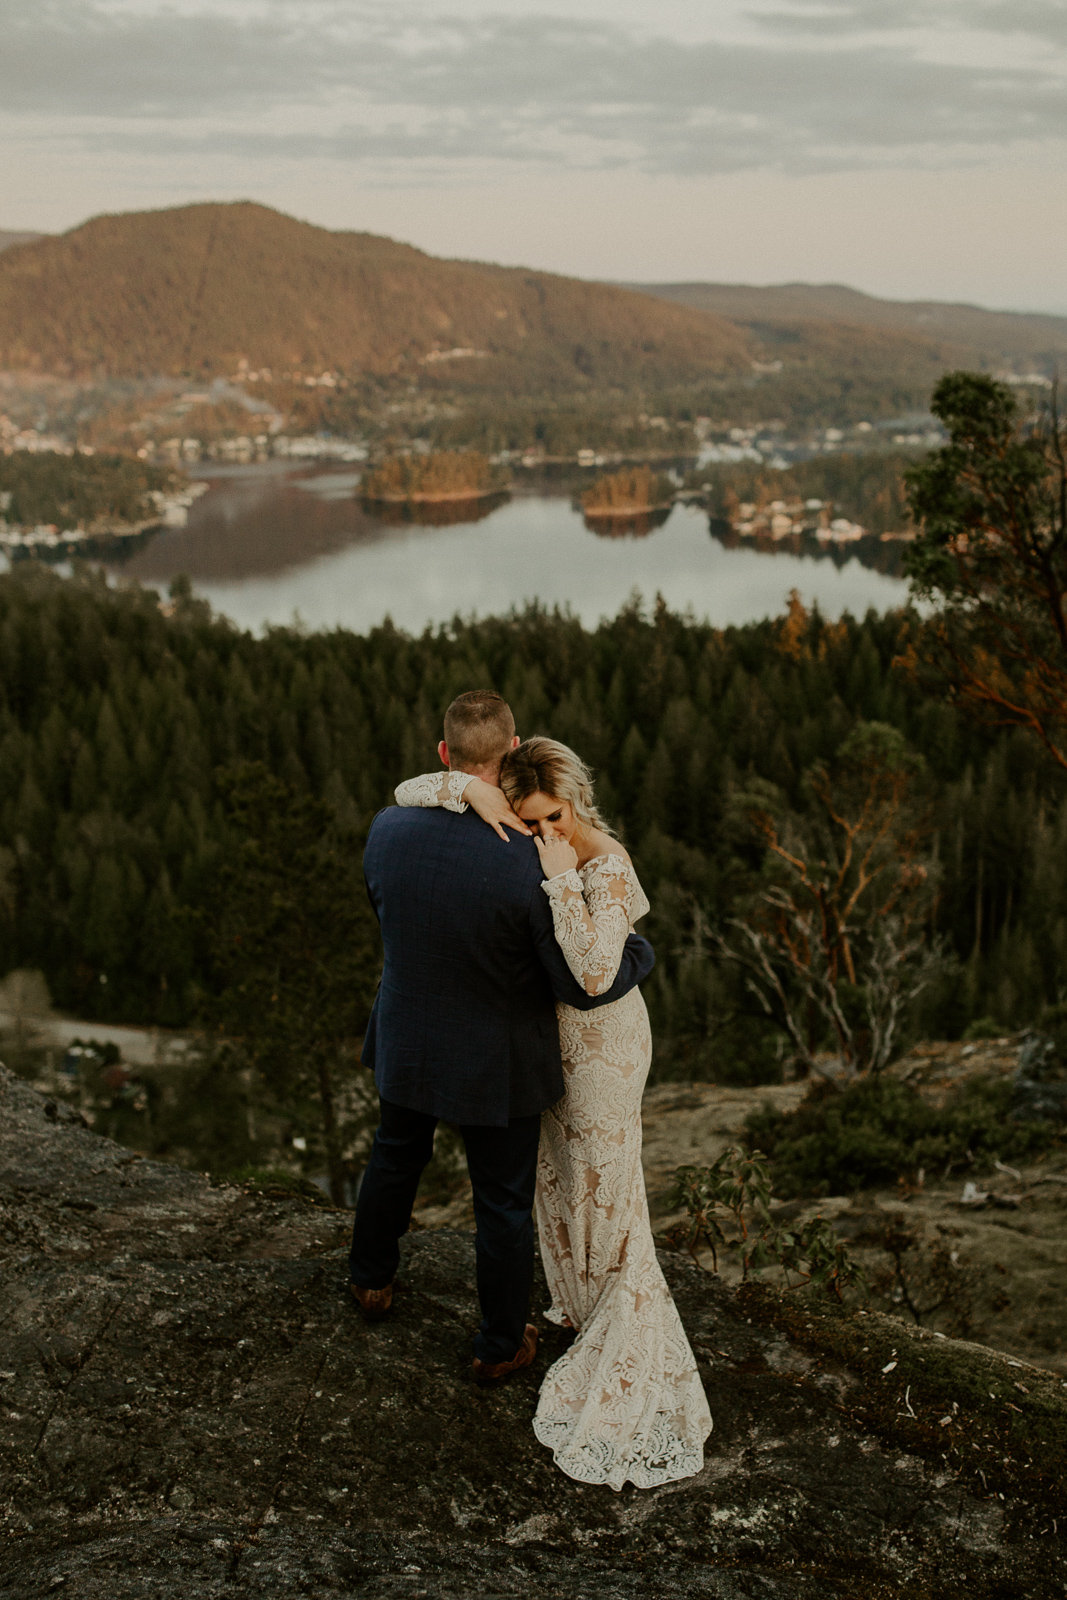 Luke Lambertson Photo_BritishColumbia_Canada_AdventurousCouple_Elopement_IMG-8548.jpg